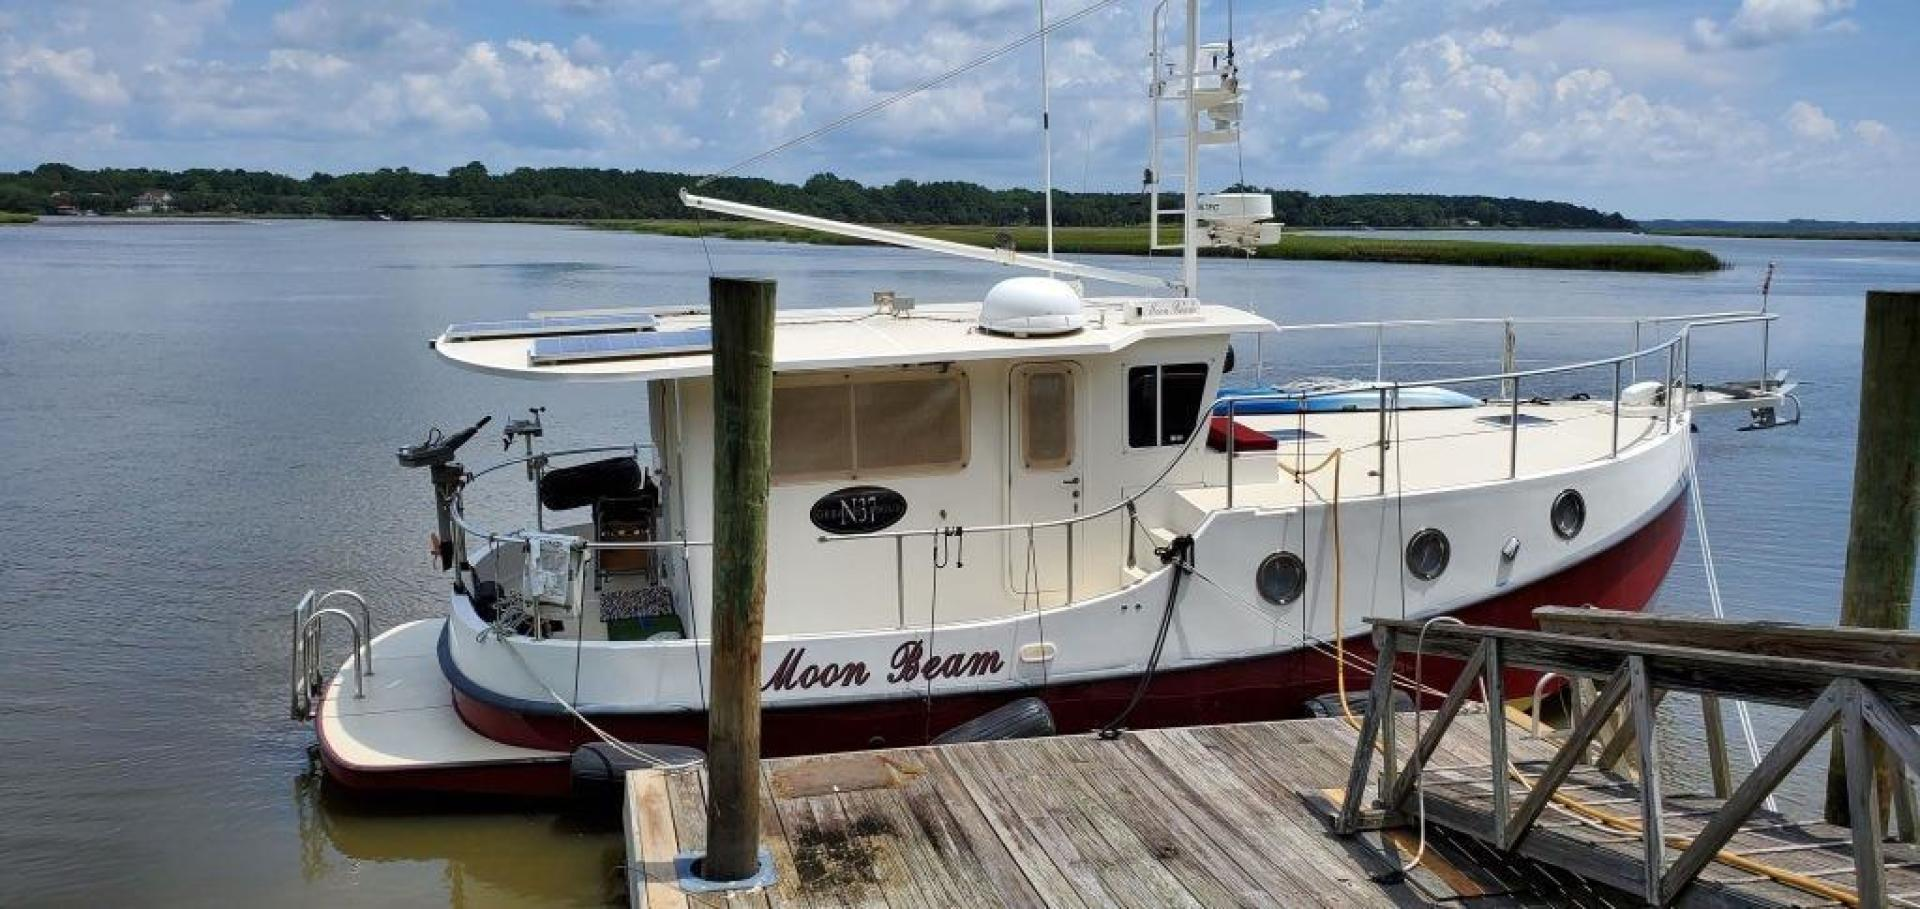 Great Harbour-N37 2007-Moon Beam Beaufort-South Carolina-United States-1319279 | Thumbnail